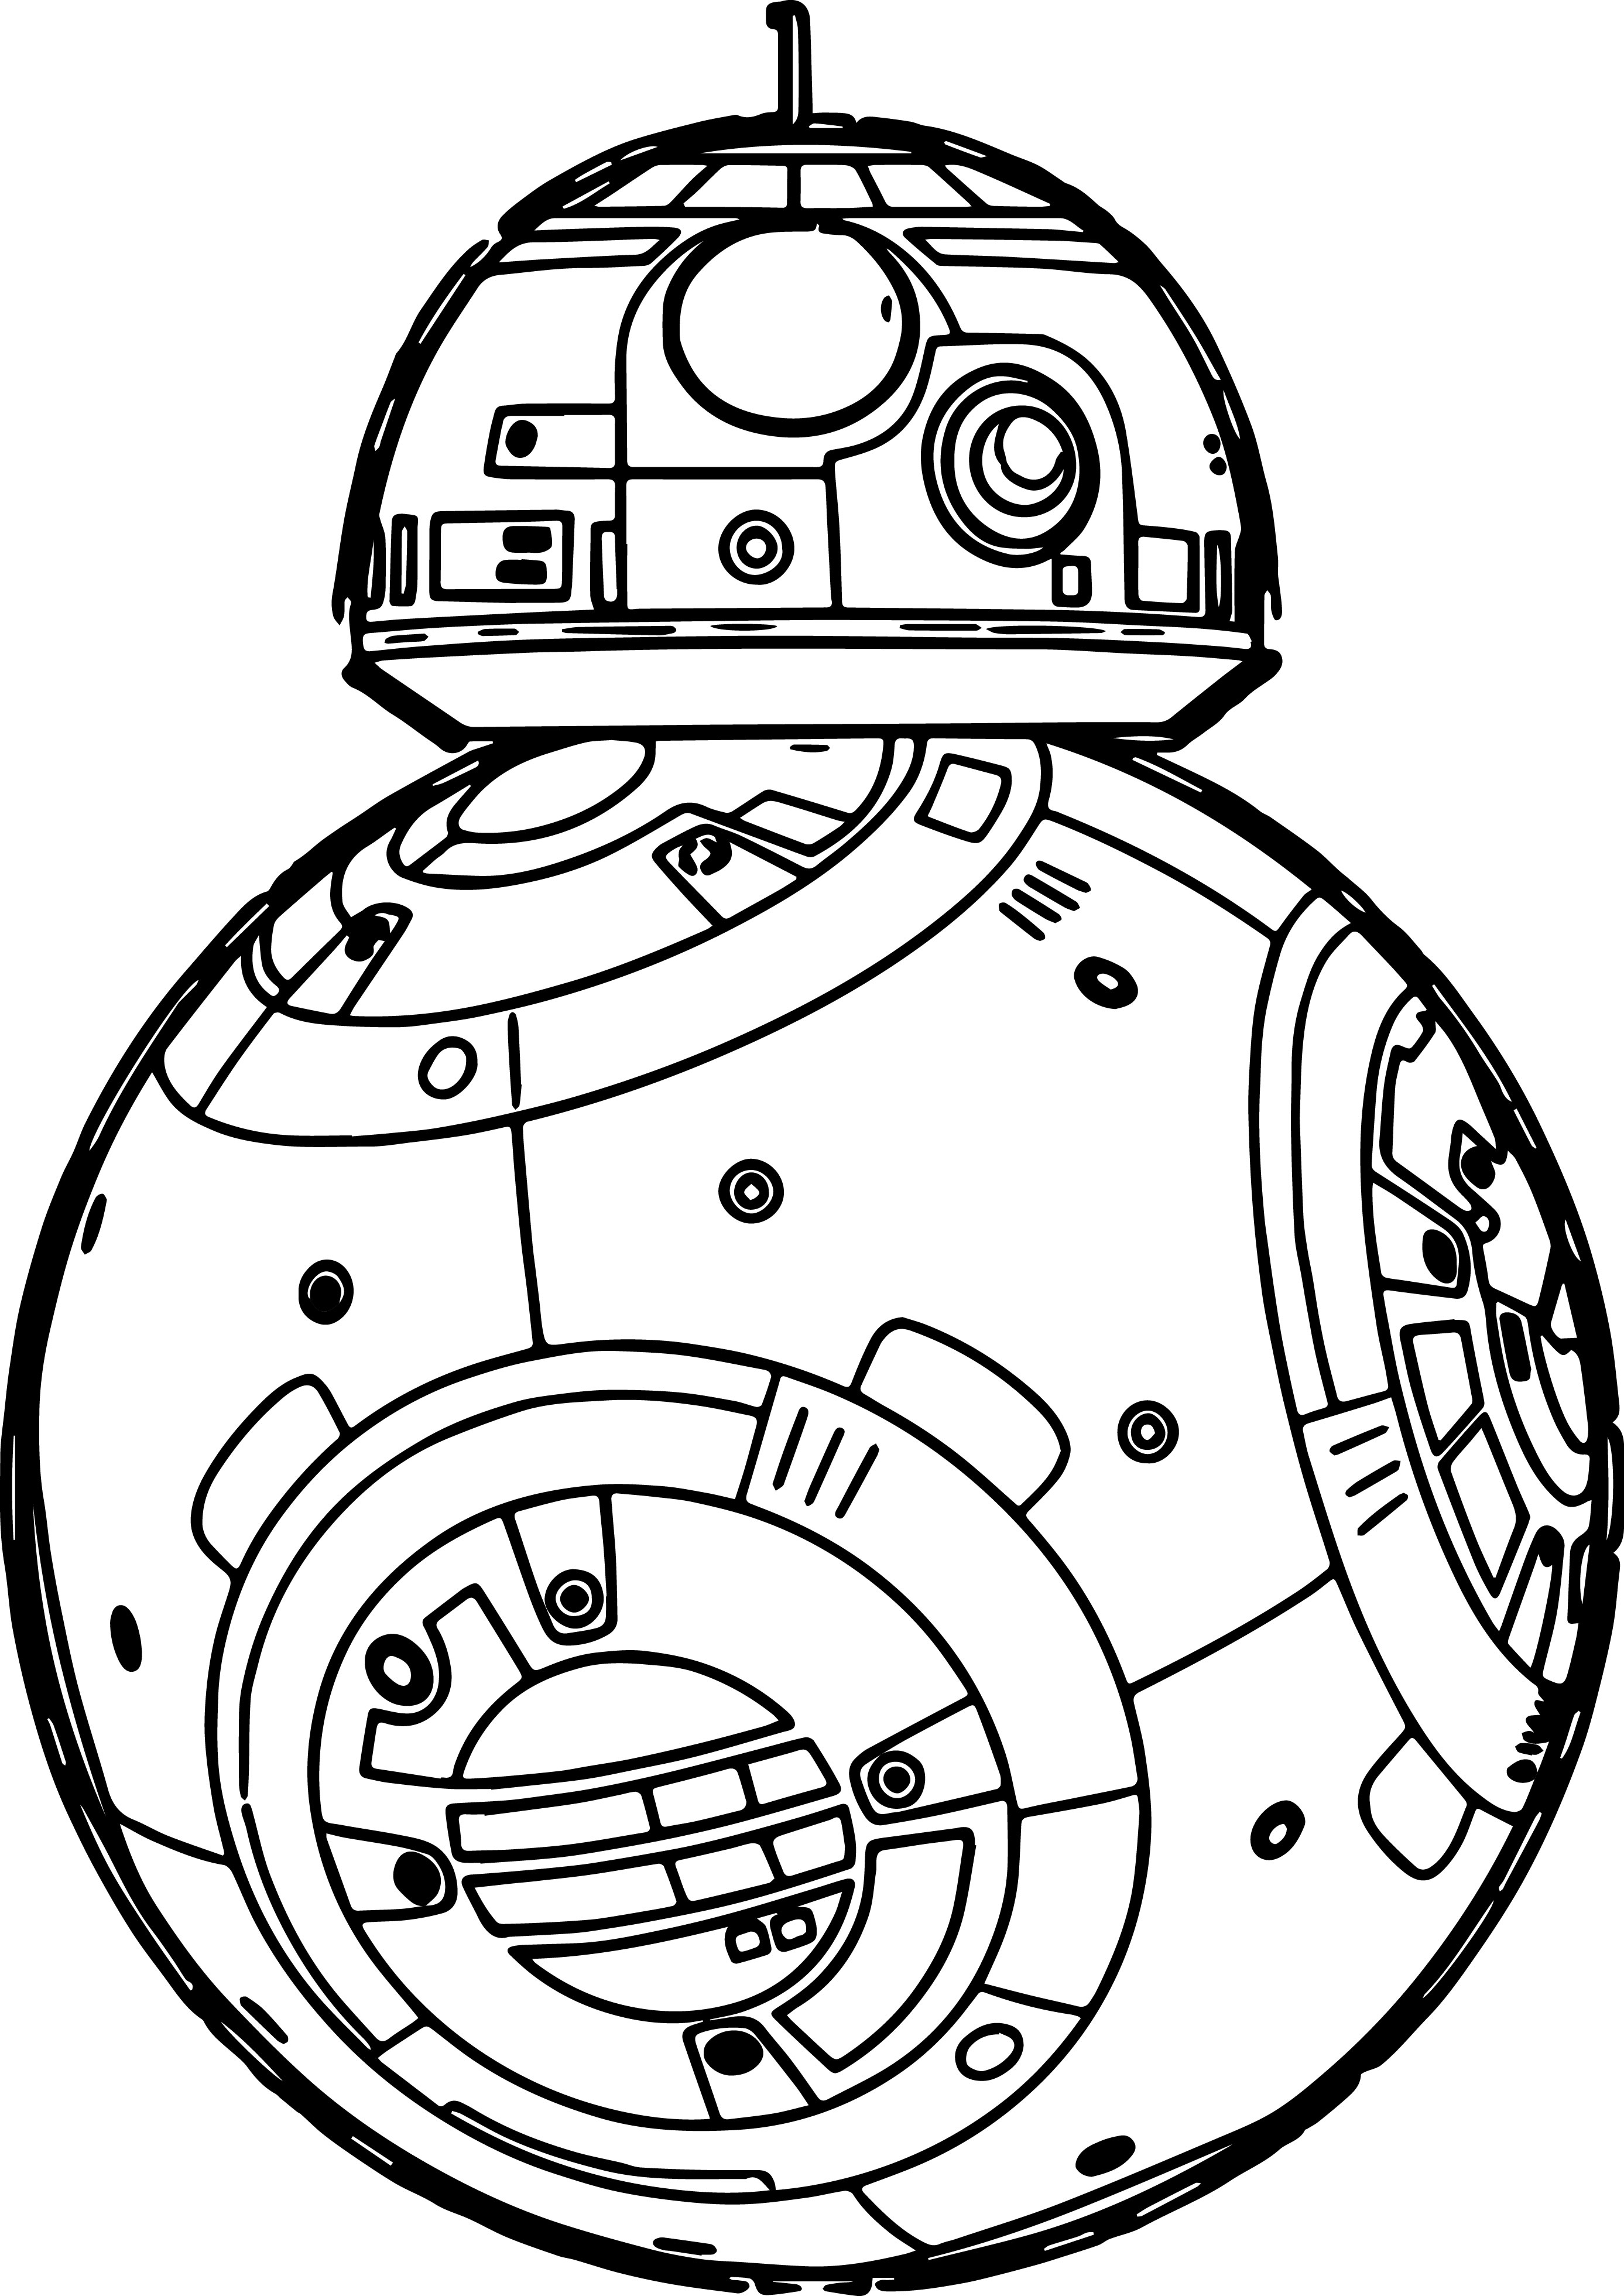 2774x3921 Star Wars The Force Awakens Coloring Pages Printable